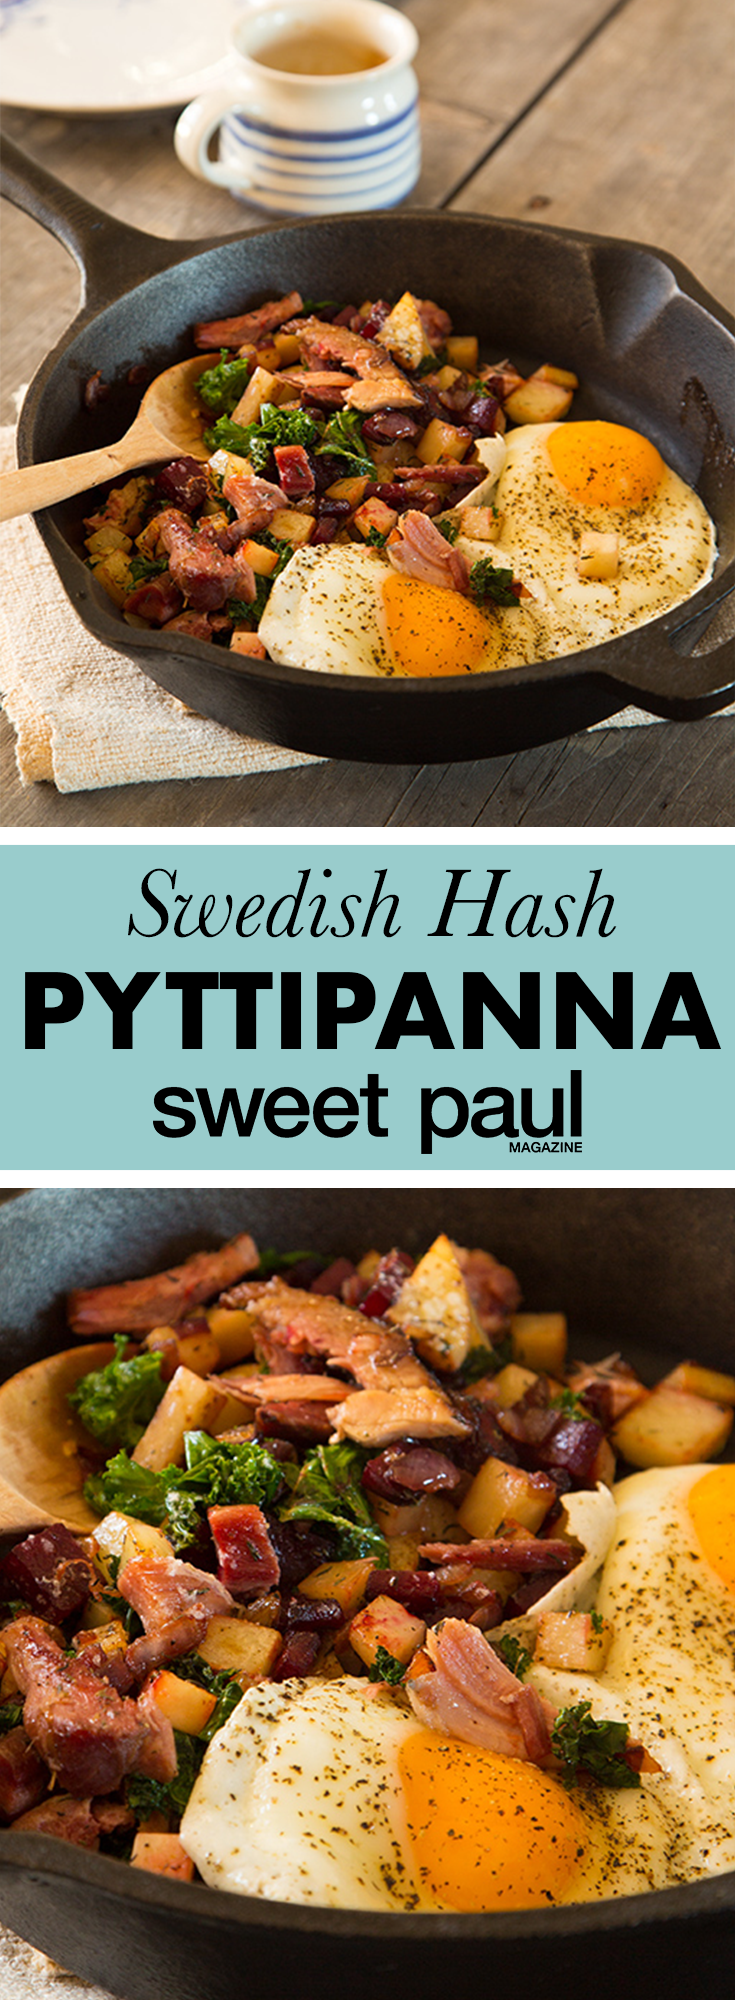 Pyttipanna Swedish Hash Swedish recipes, Breakfast